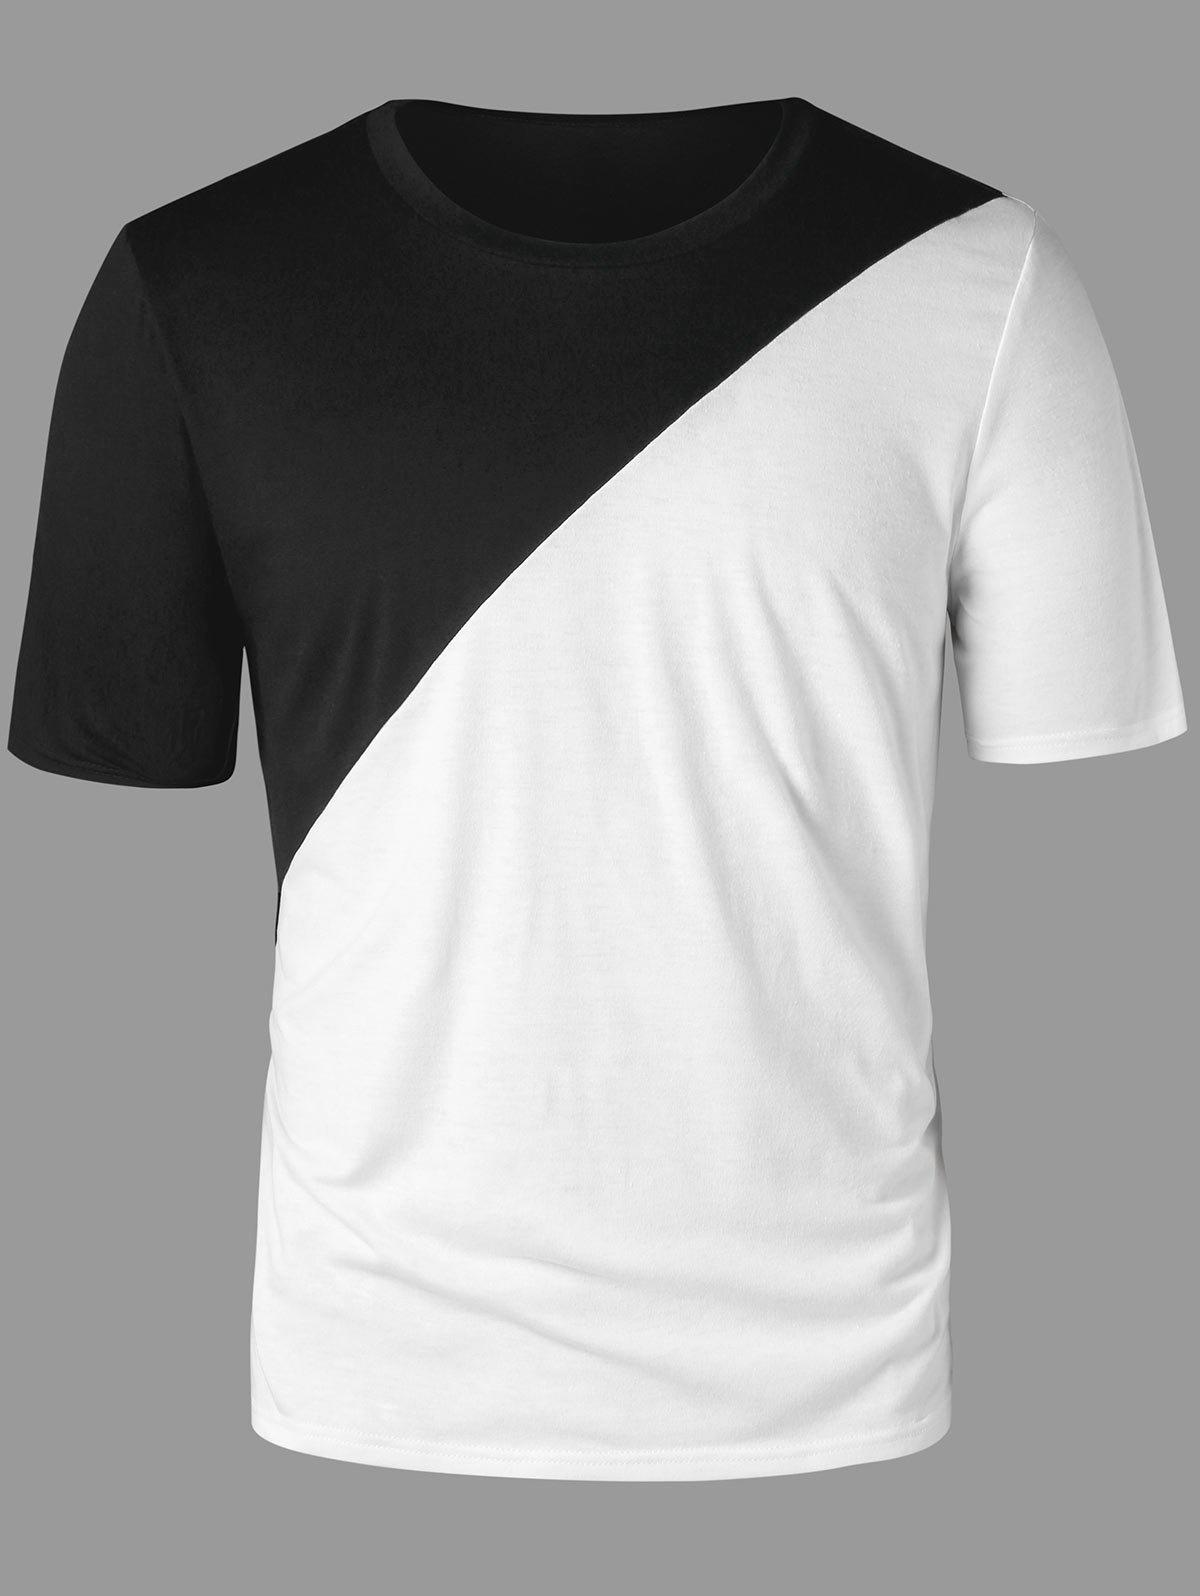 257317441e3af 2019 Two Tone Split Blank T-shirt